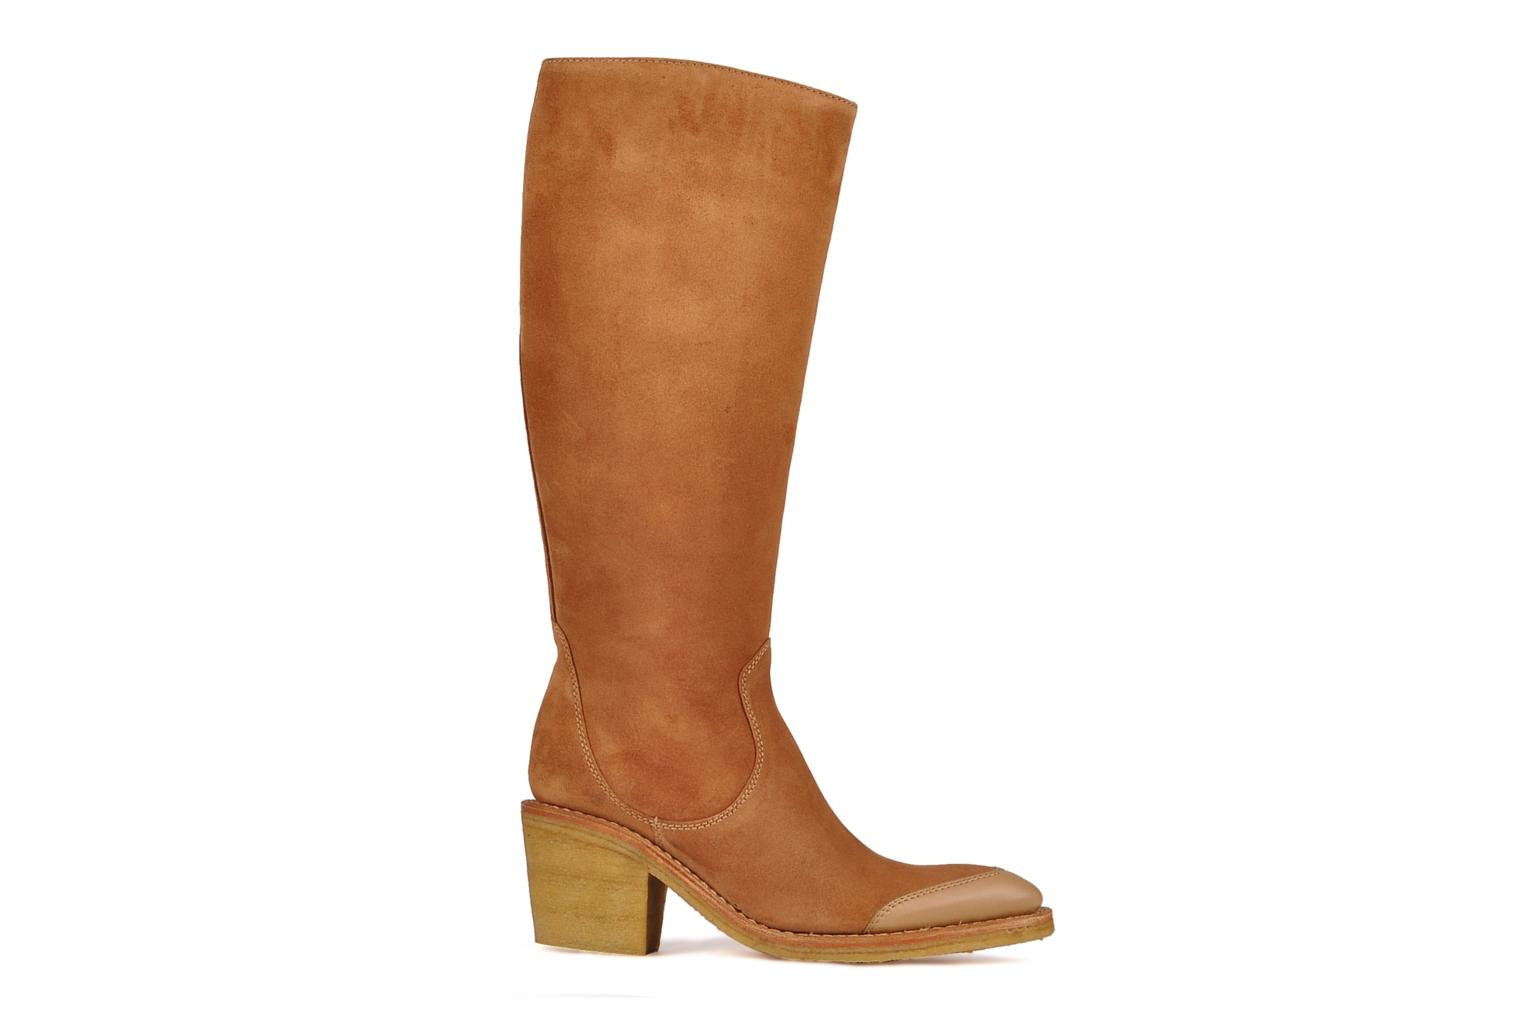 Wallis 7 hi botte Vel softy gold